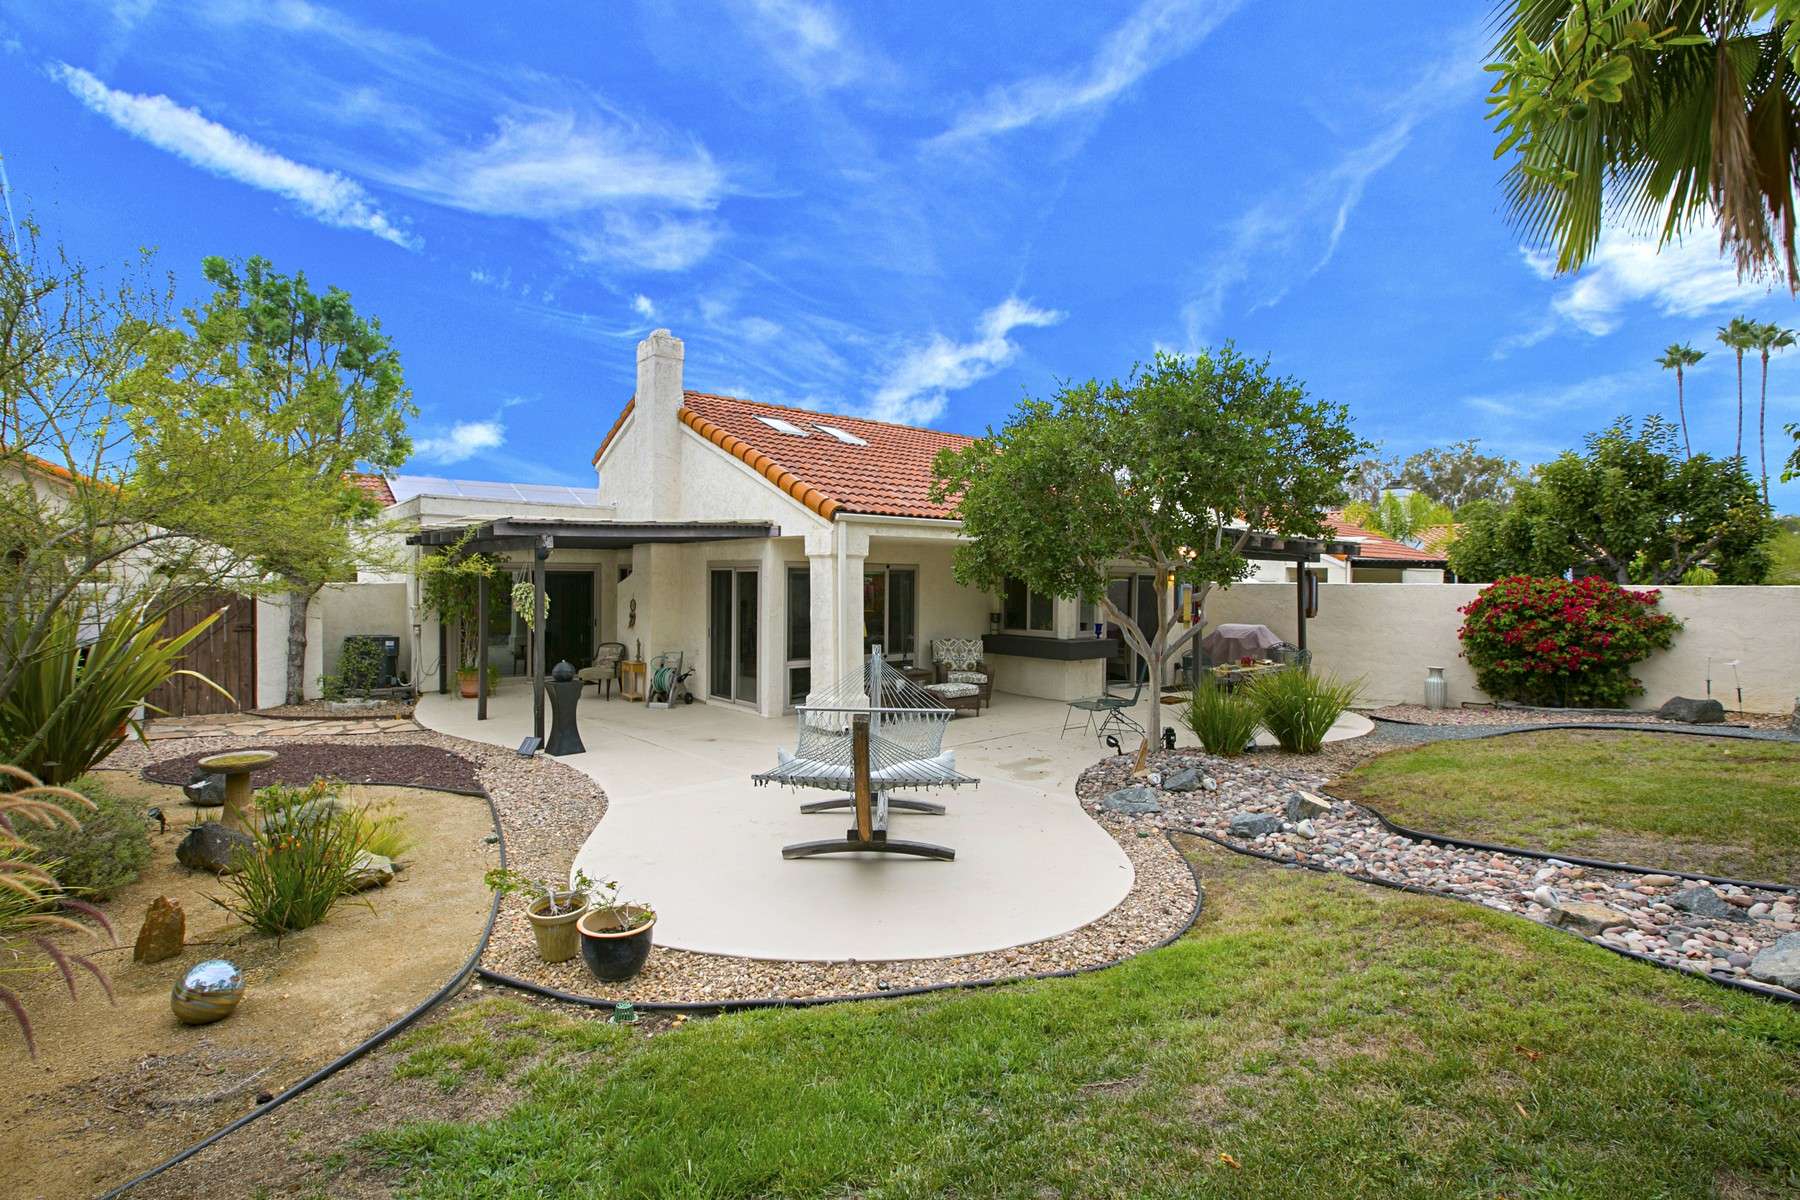 Single Family Home for Sale at 12889 Camino Ramillette San Diego, California 92128 United States